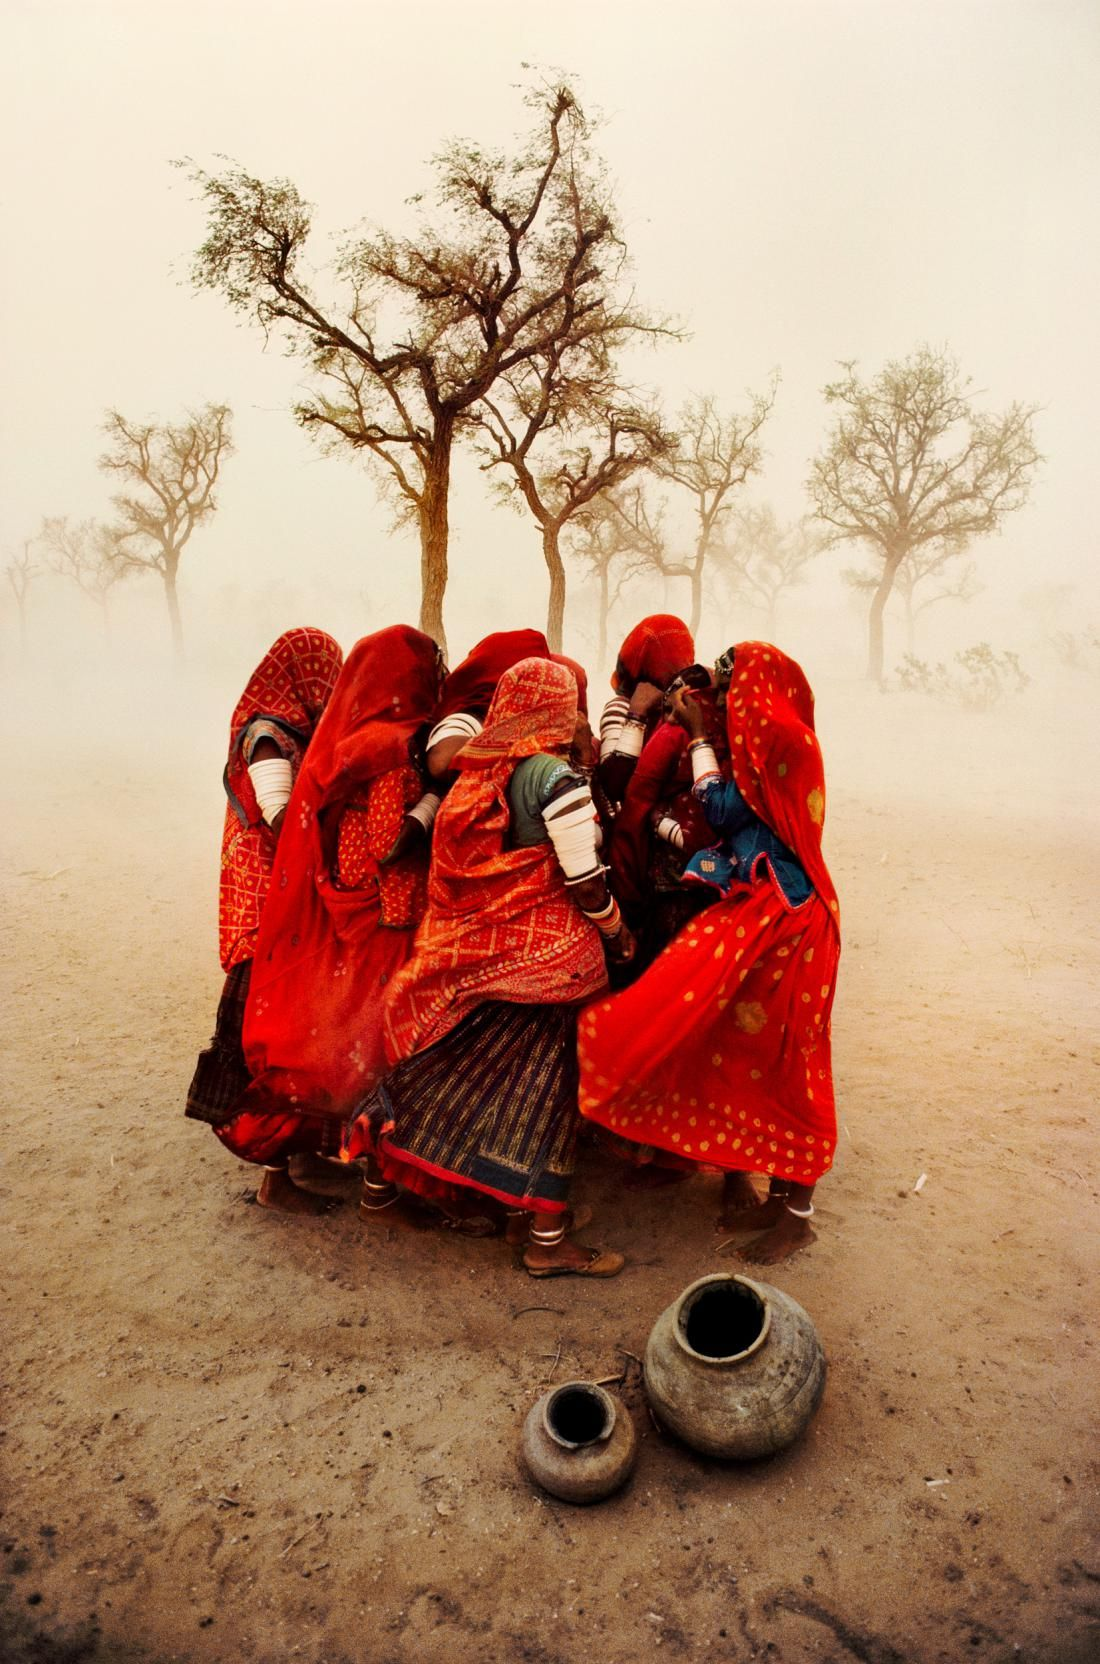 In its first partnership with the International Center of Photography, the Rubin Museum of Art presents Steve McCurry: India. The exhibition showcases McCurry's ...